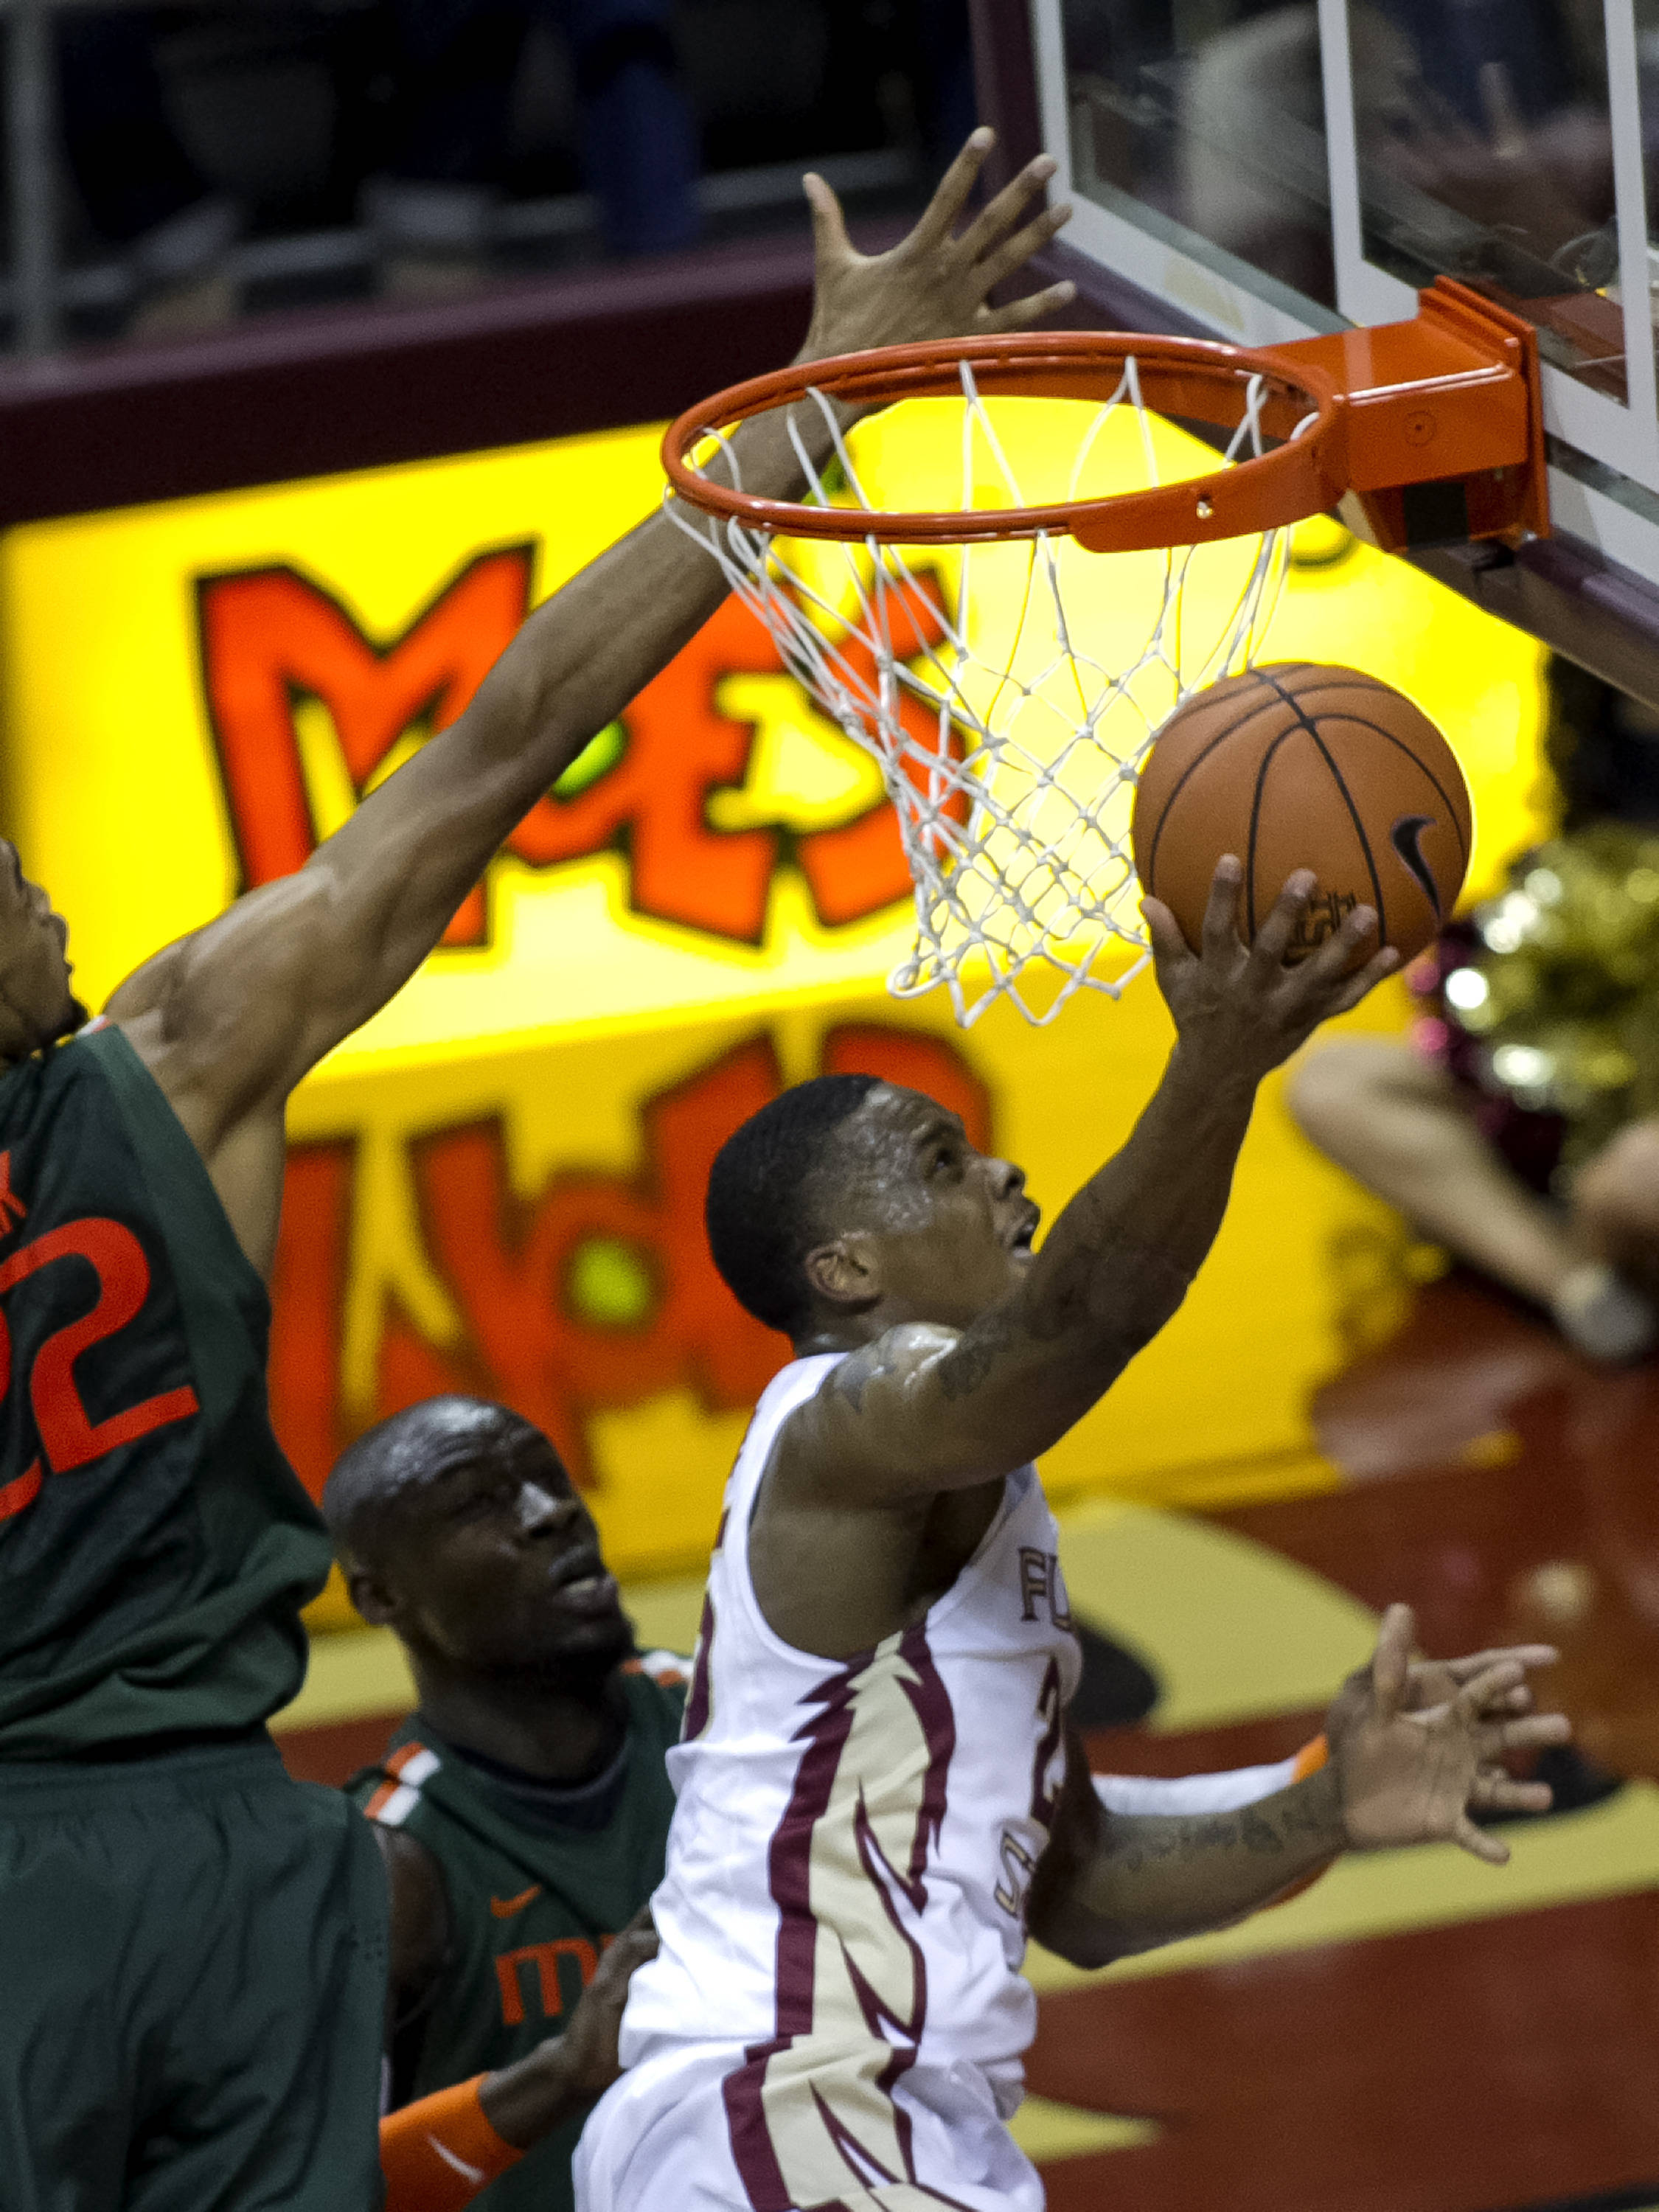 Aaron Thomas (25) uses the rim for protection, FSU vs Miami, 2-10-14, (Photo's by Steve Musco)